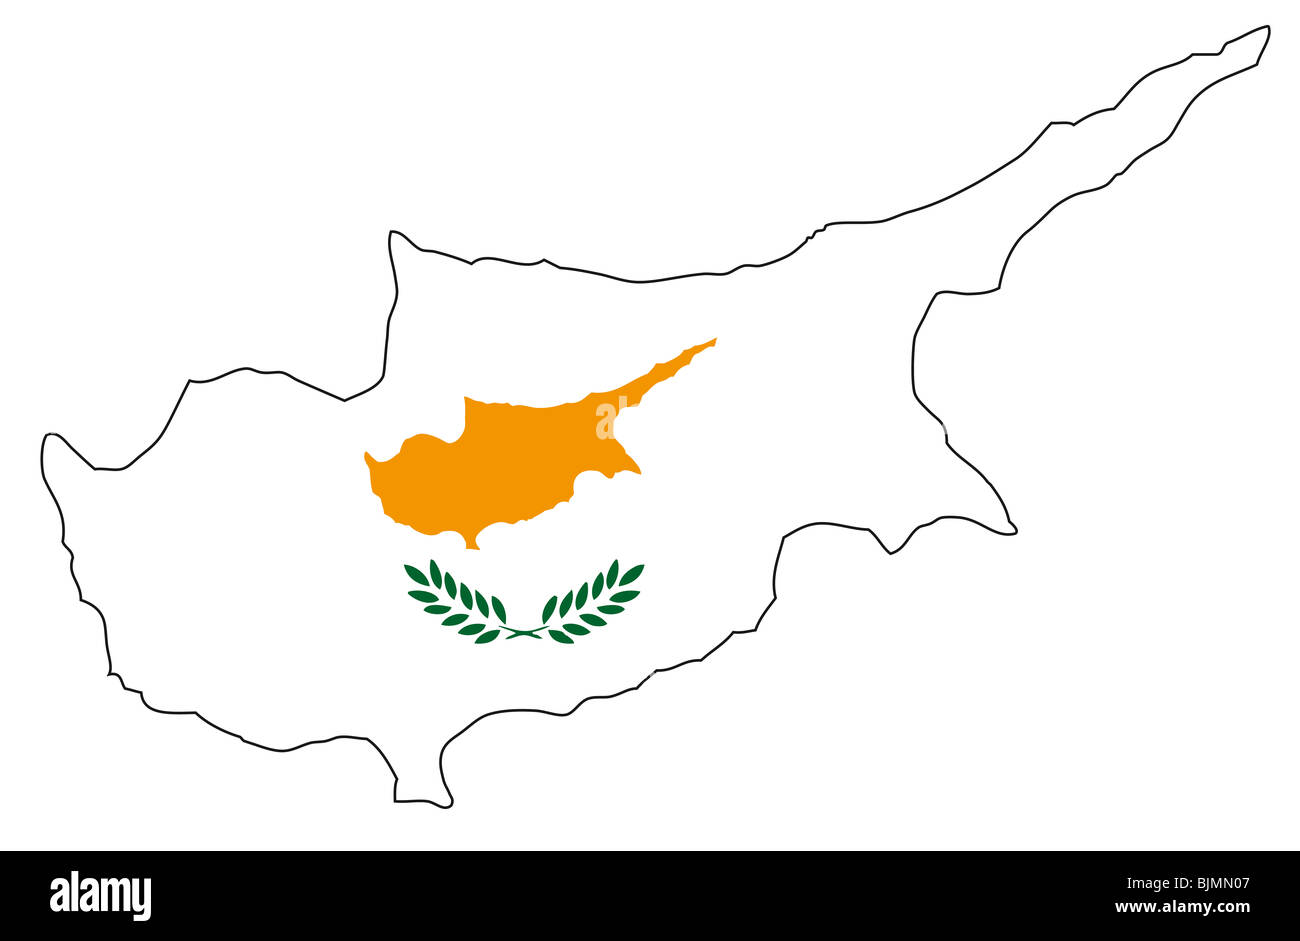 Republic of Cyprus, flag, outline - Stock Image